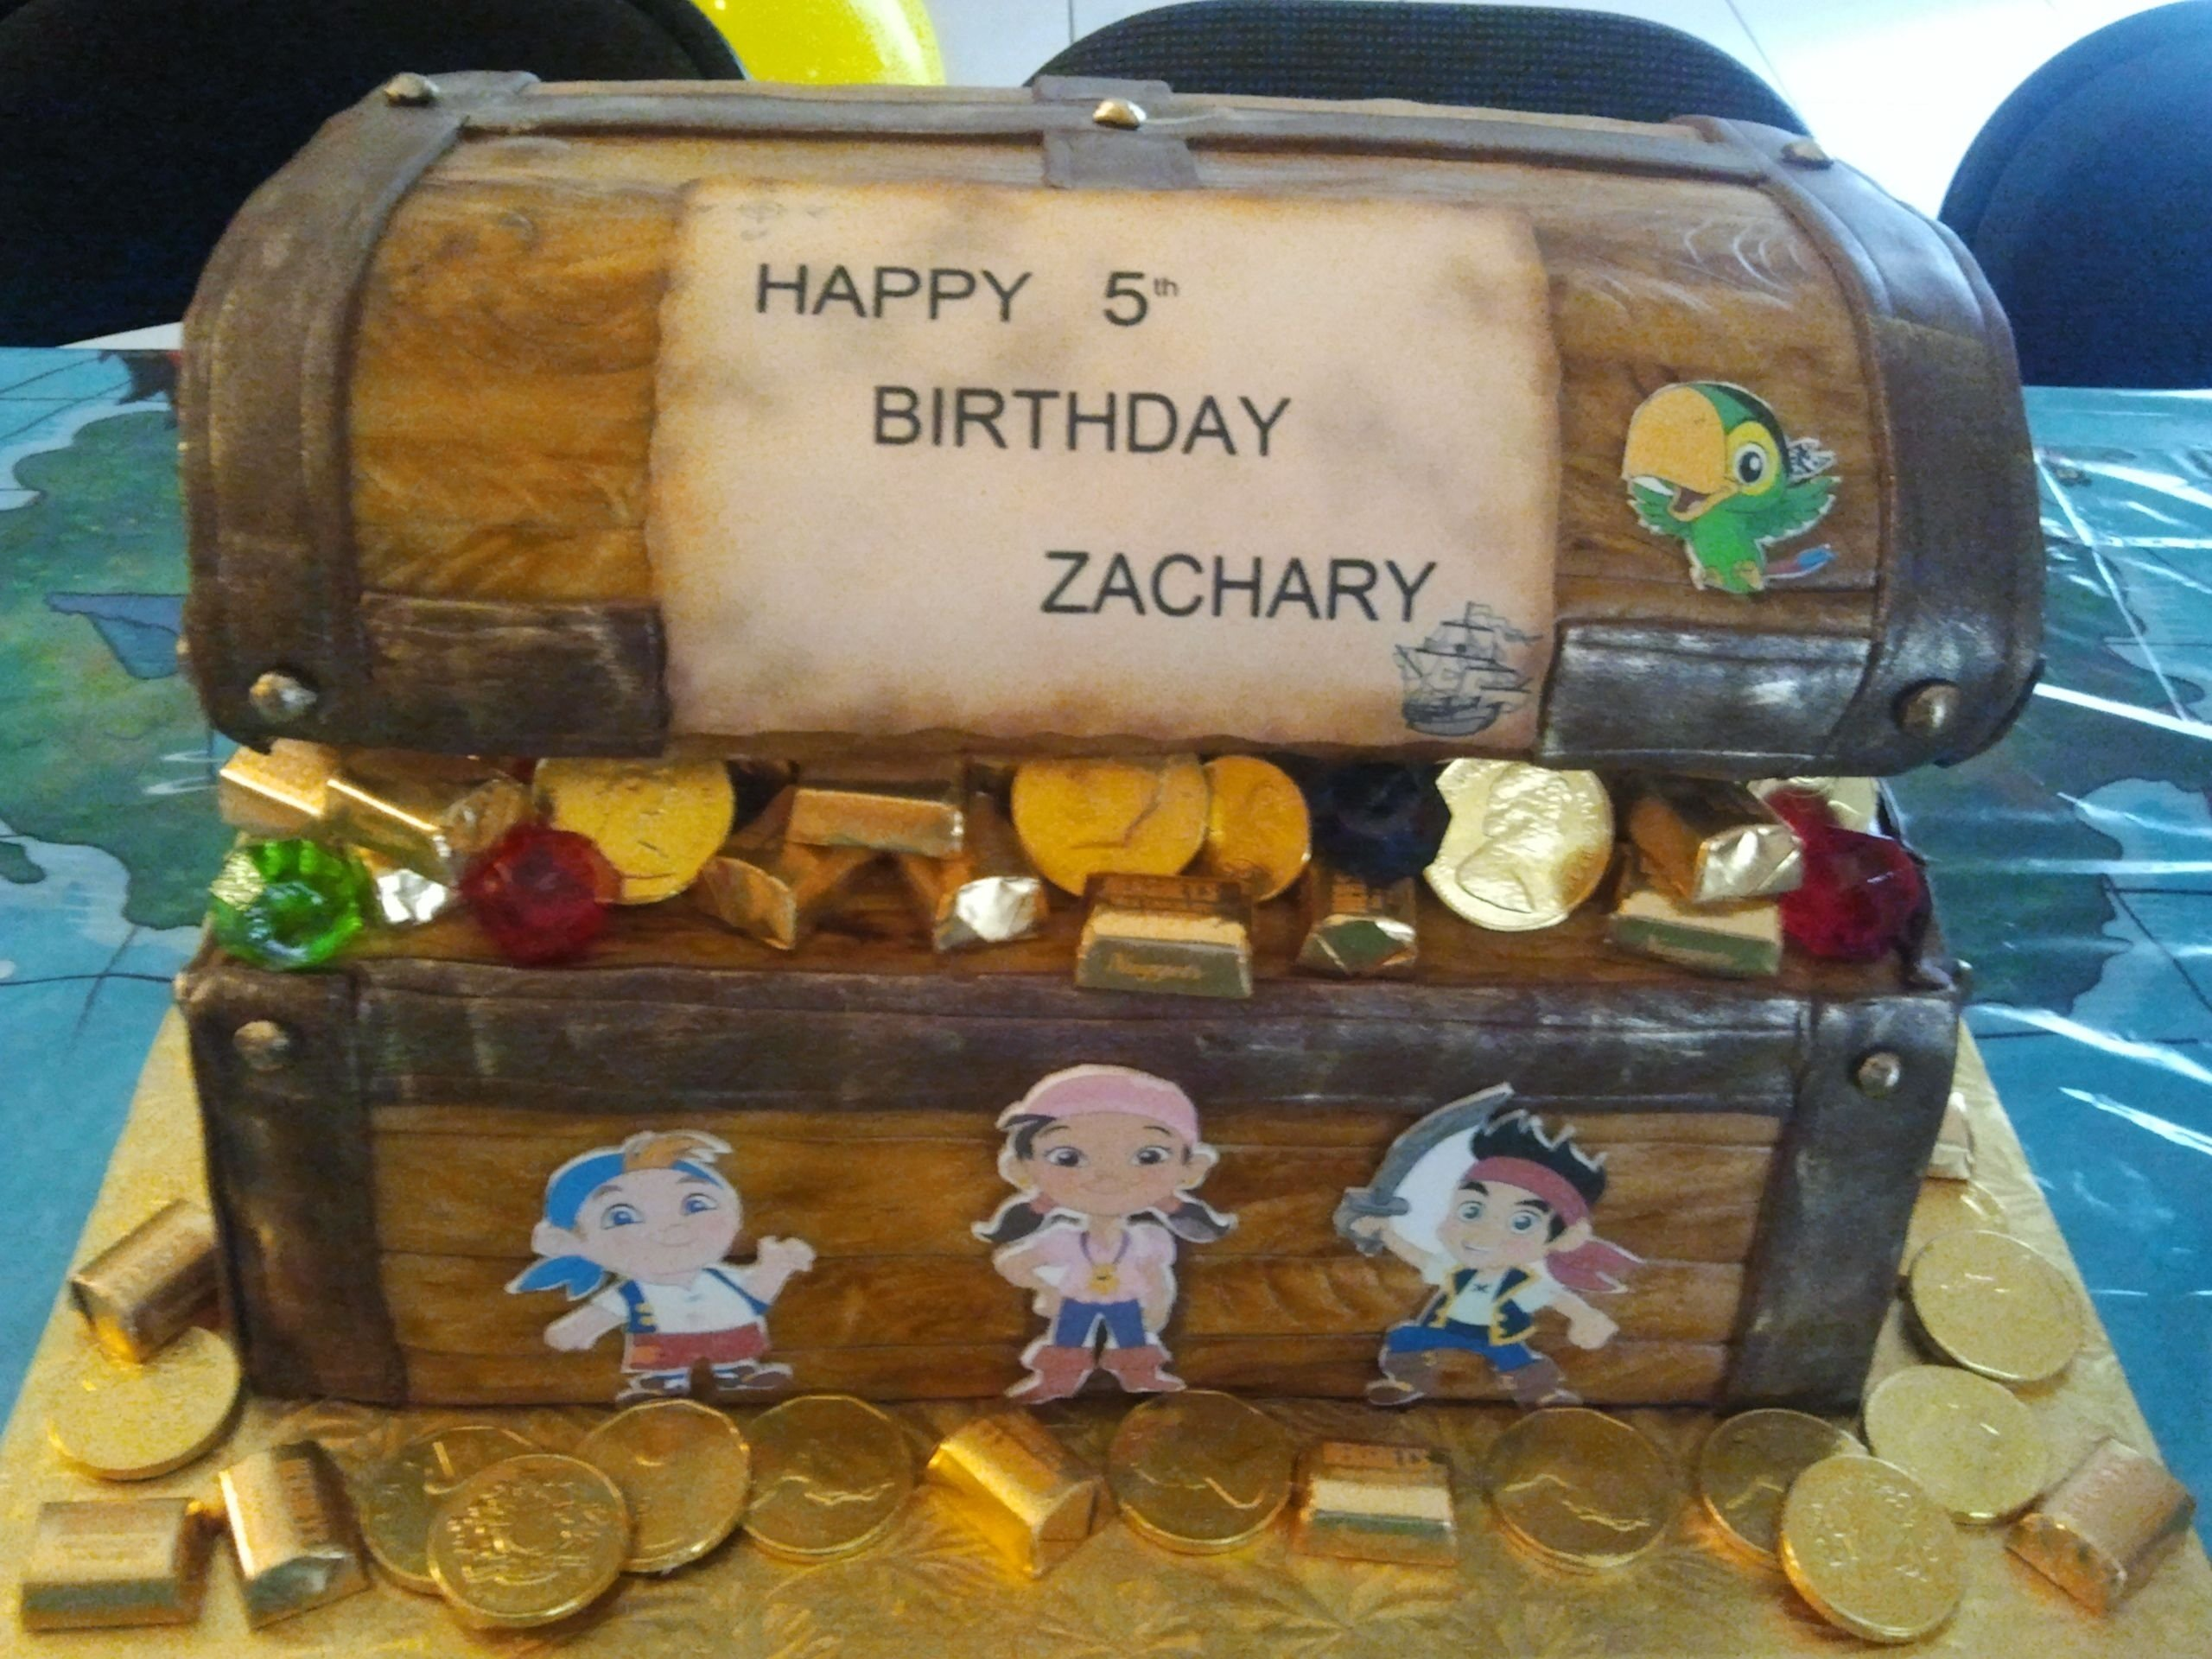 10 Ideal Jake And The Neverland Pirate Birthday Party Ideas jake and the neverland pirates cake cute idea for party favors and 1 2020